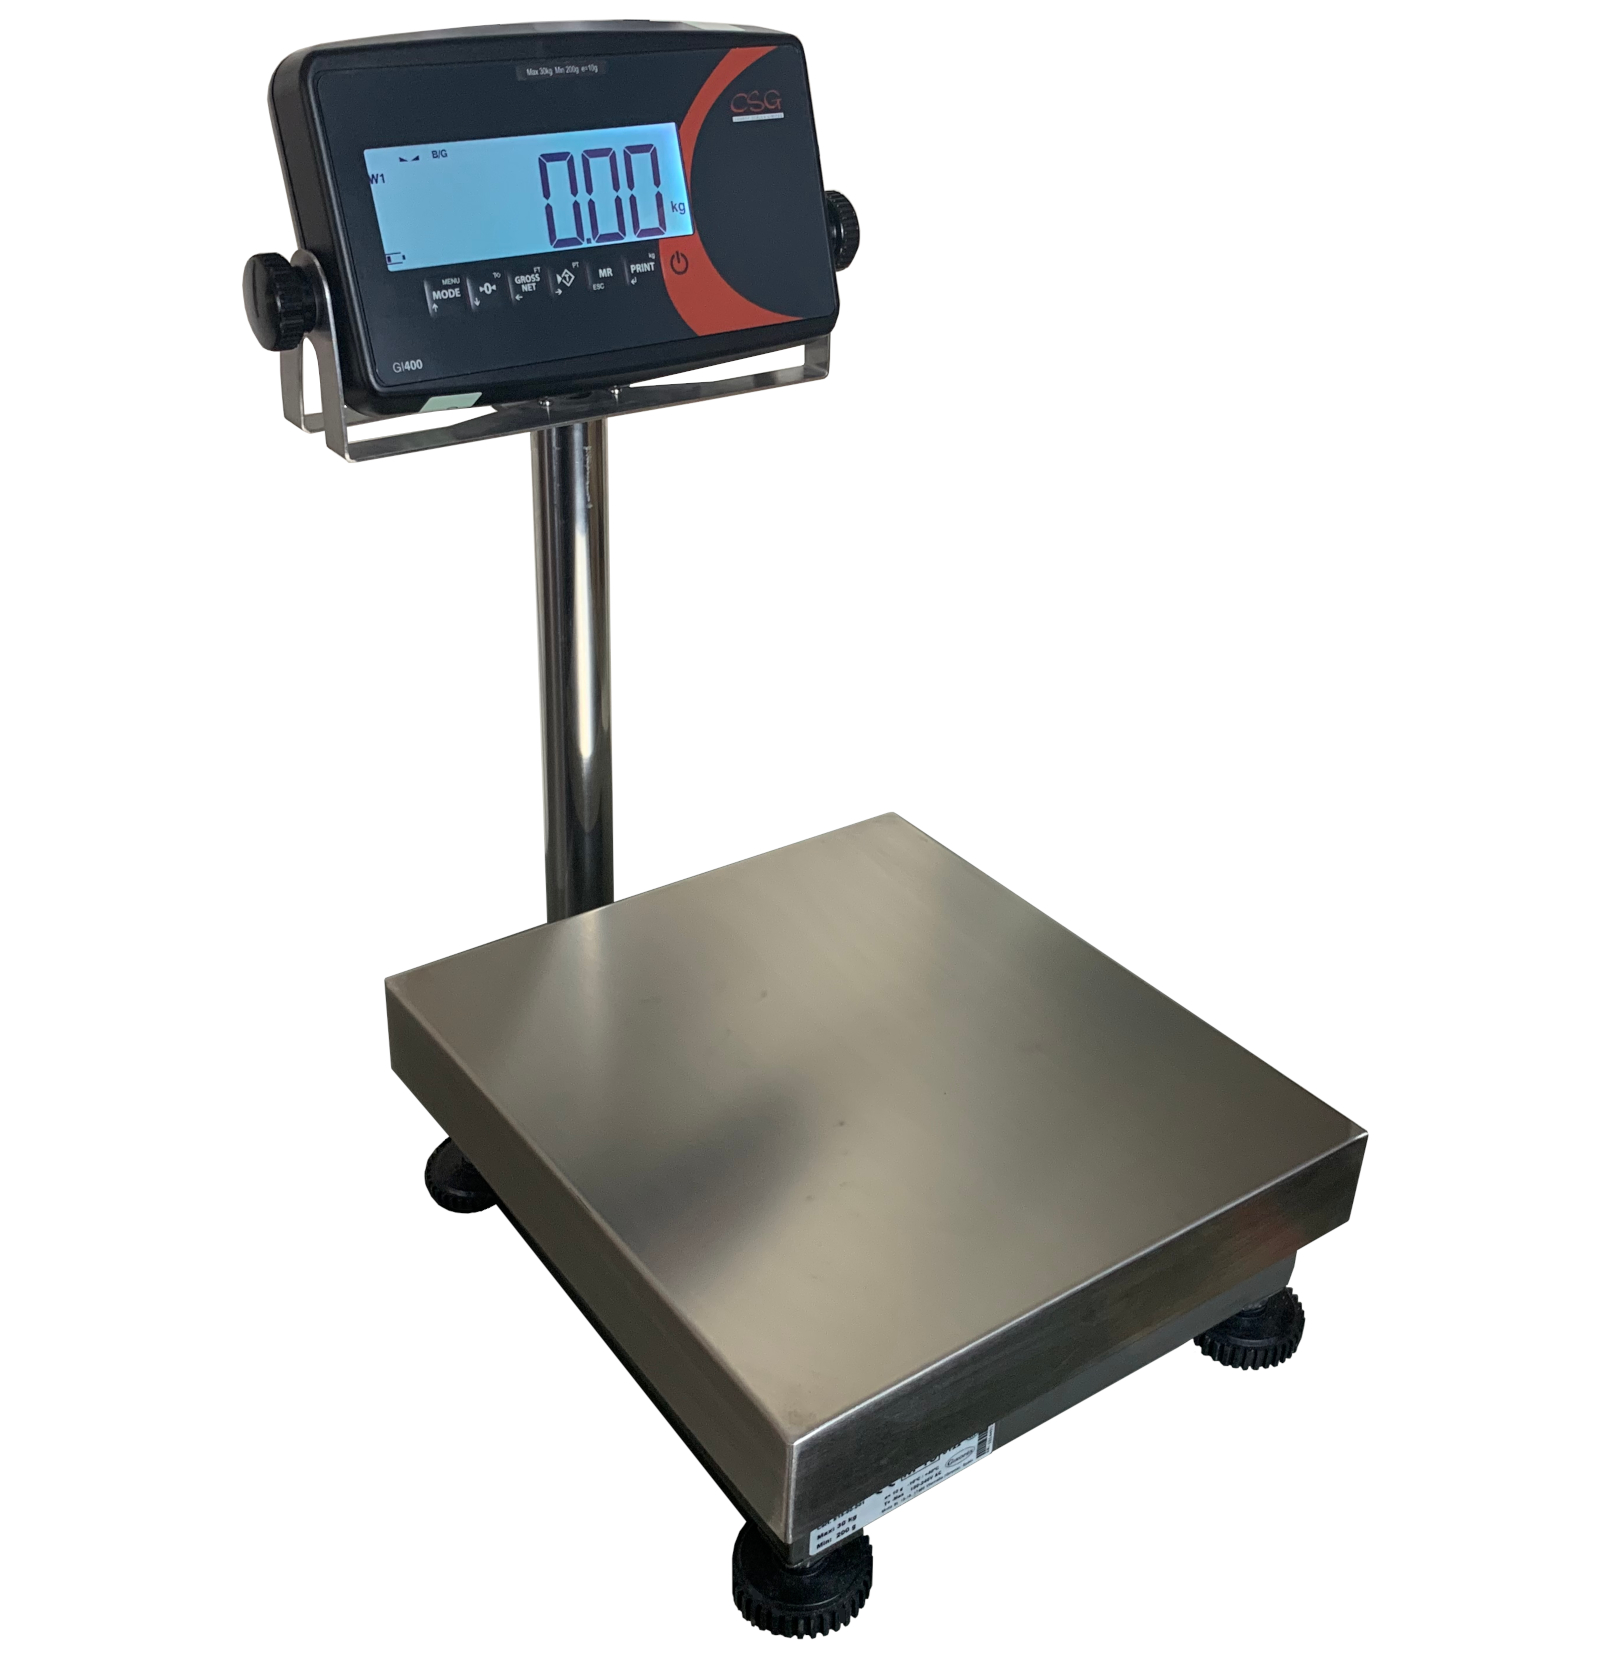 CSG TOPG EC TRADE APPROVED INDUSTRIAL BENCH - FLOOR SCALE